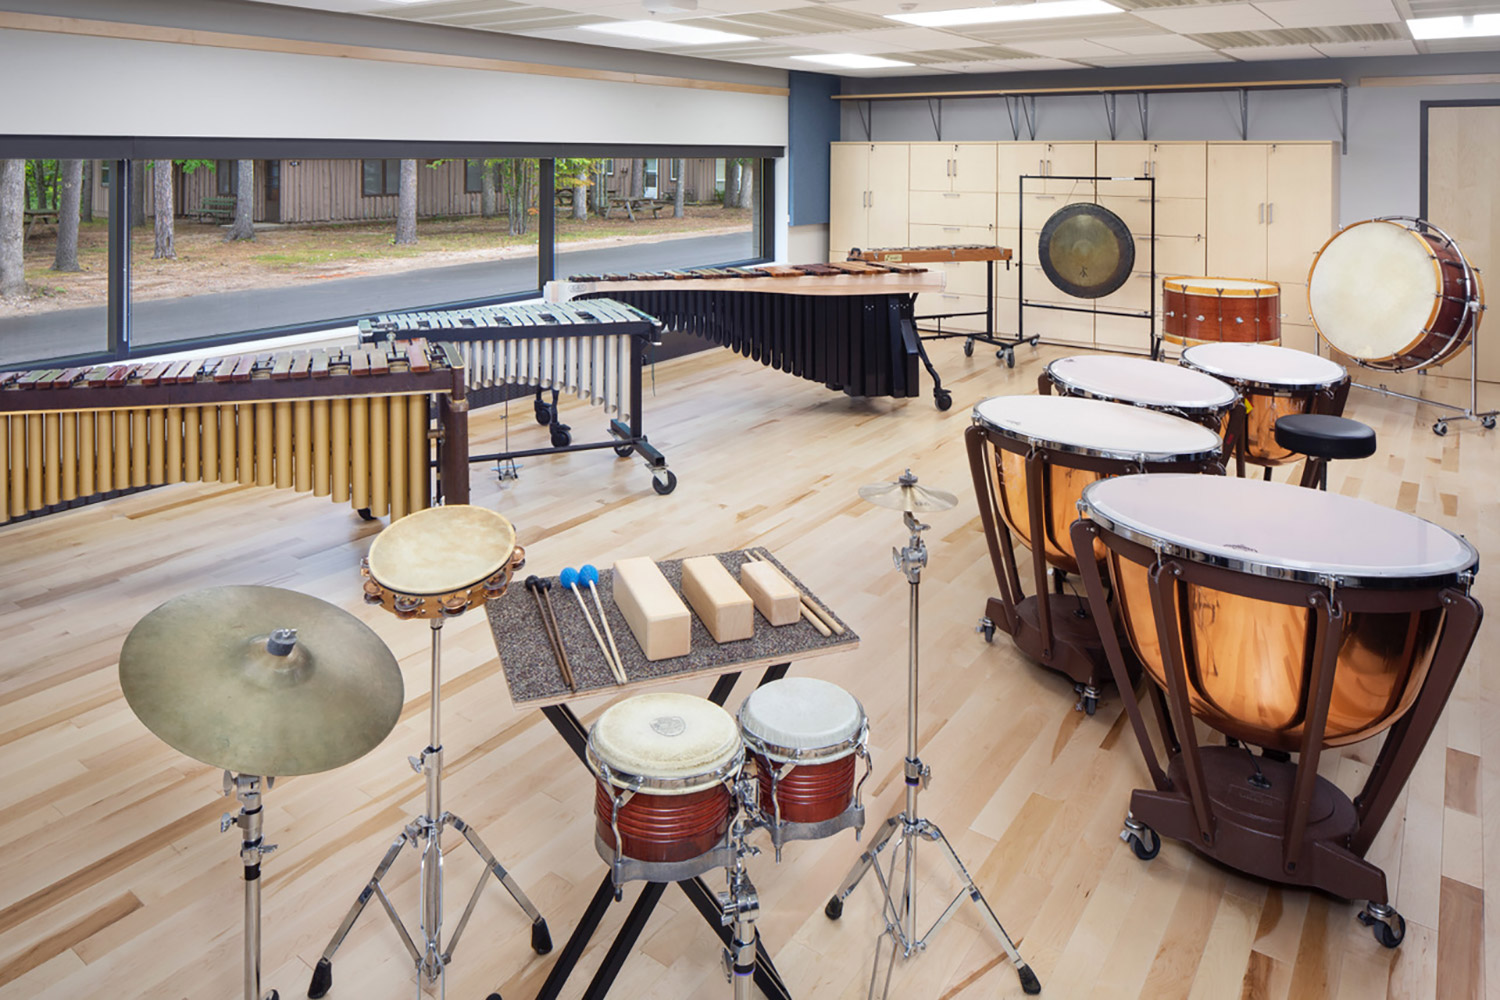 Interlochen has recently completed their new complex. A key component of the new complex is a state-of-the-art recording/teaching studio complex developed by WSDG. Percussion Room.